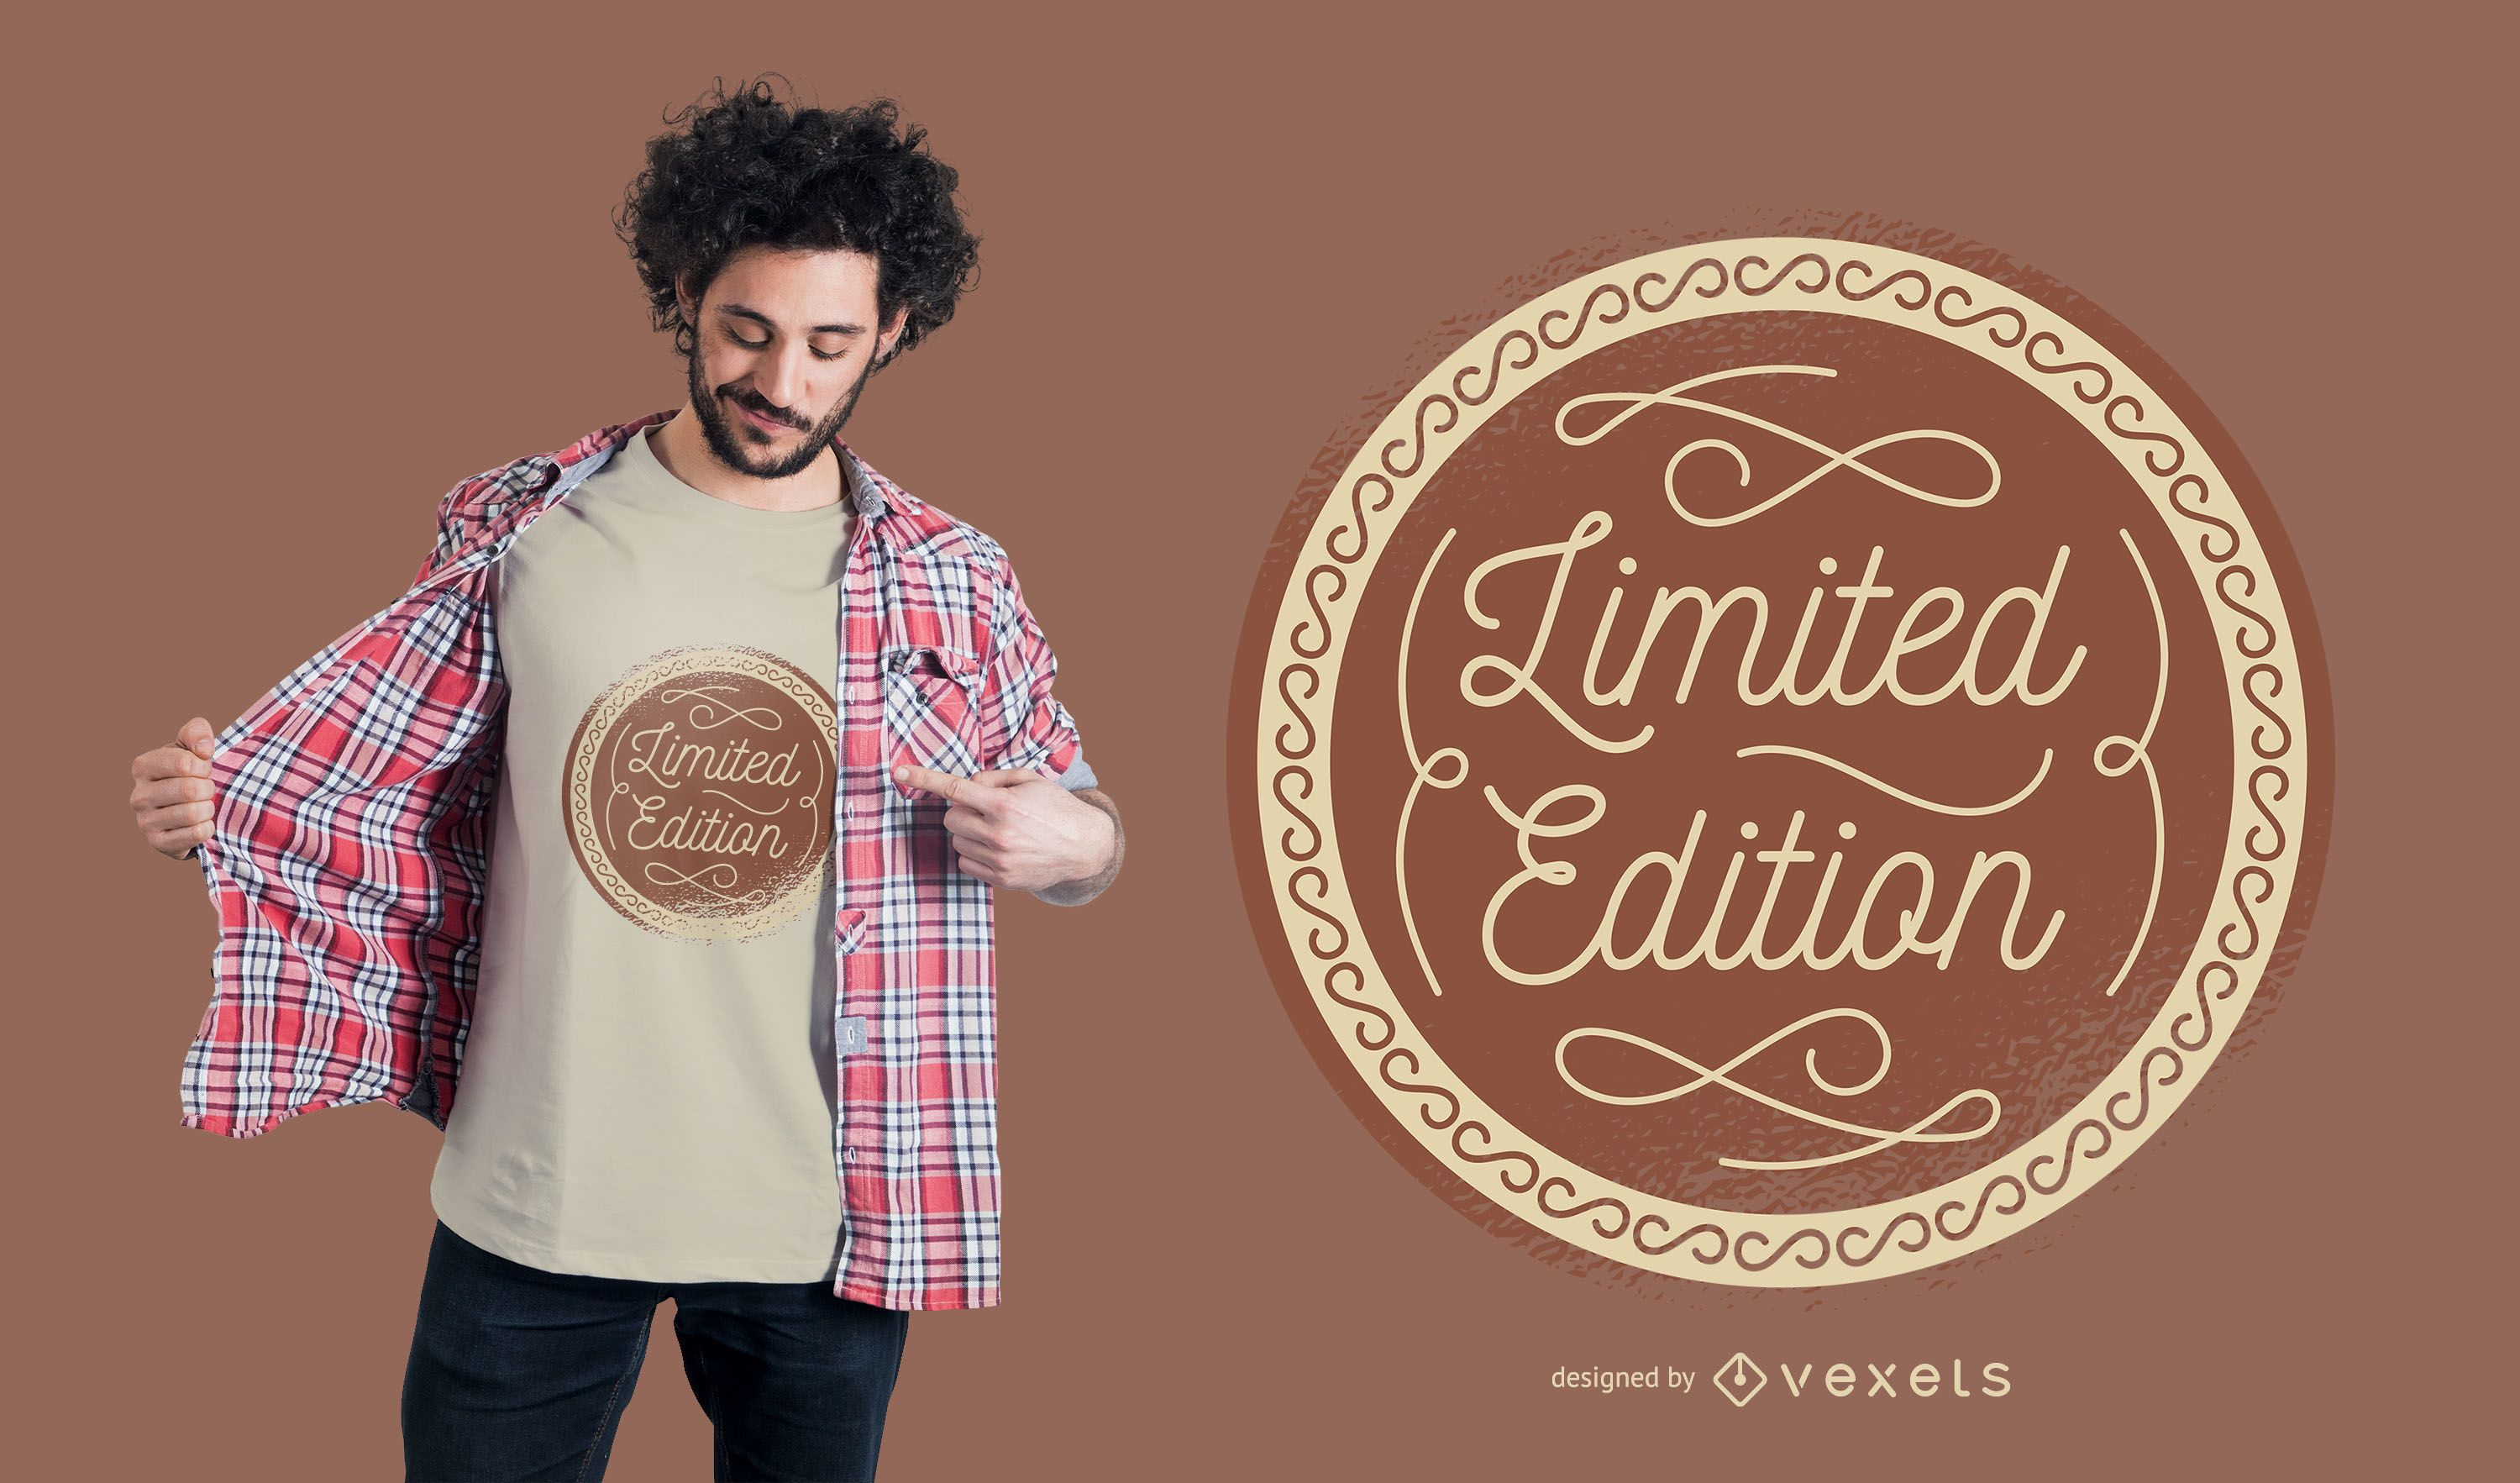 Limited Edition T-shirt Design